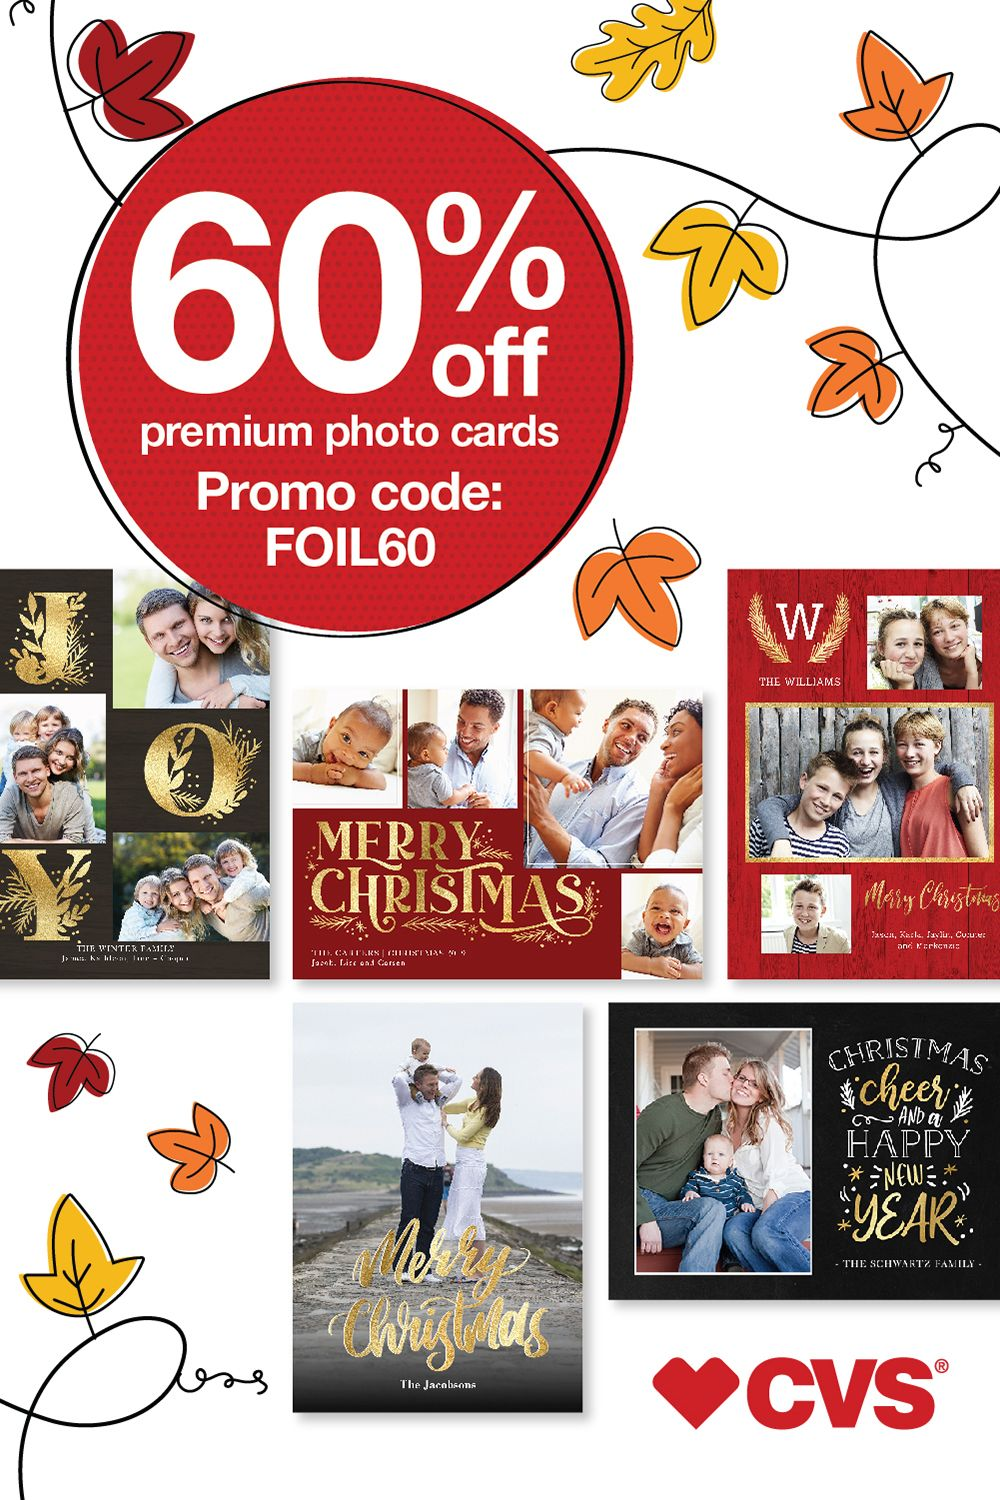 Get 60 off premium photo cards so you can create the